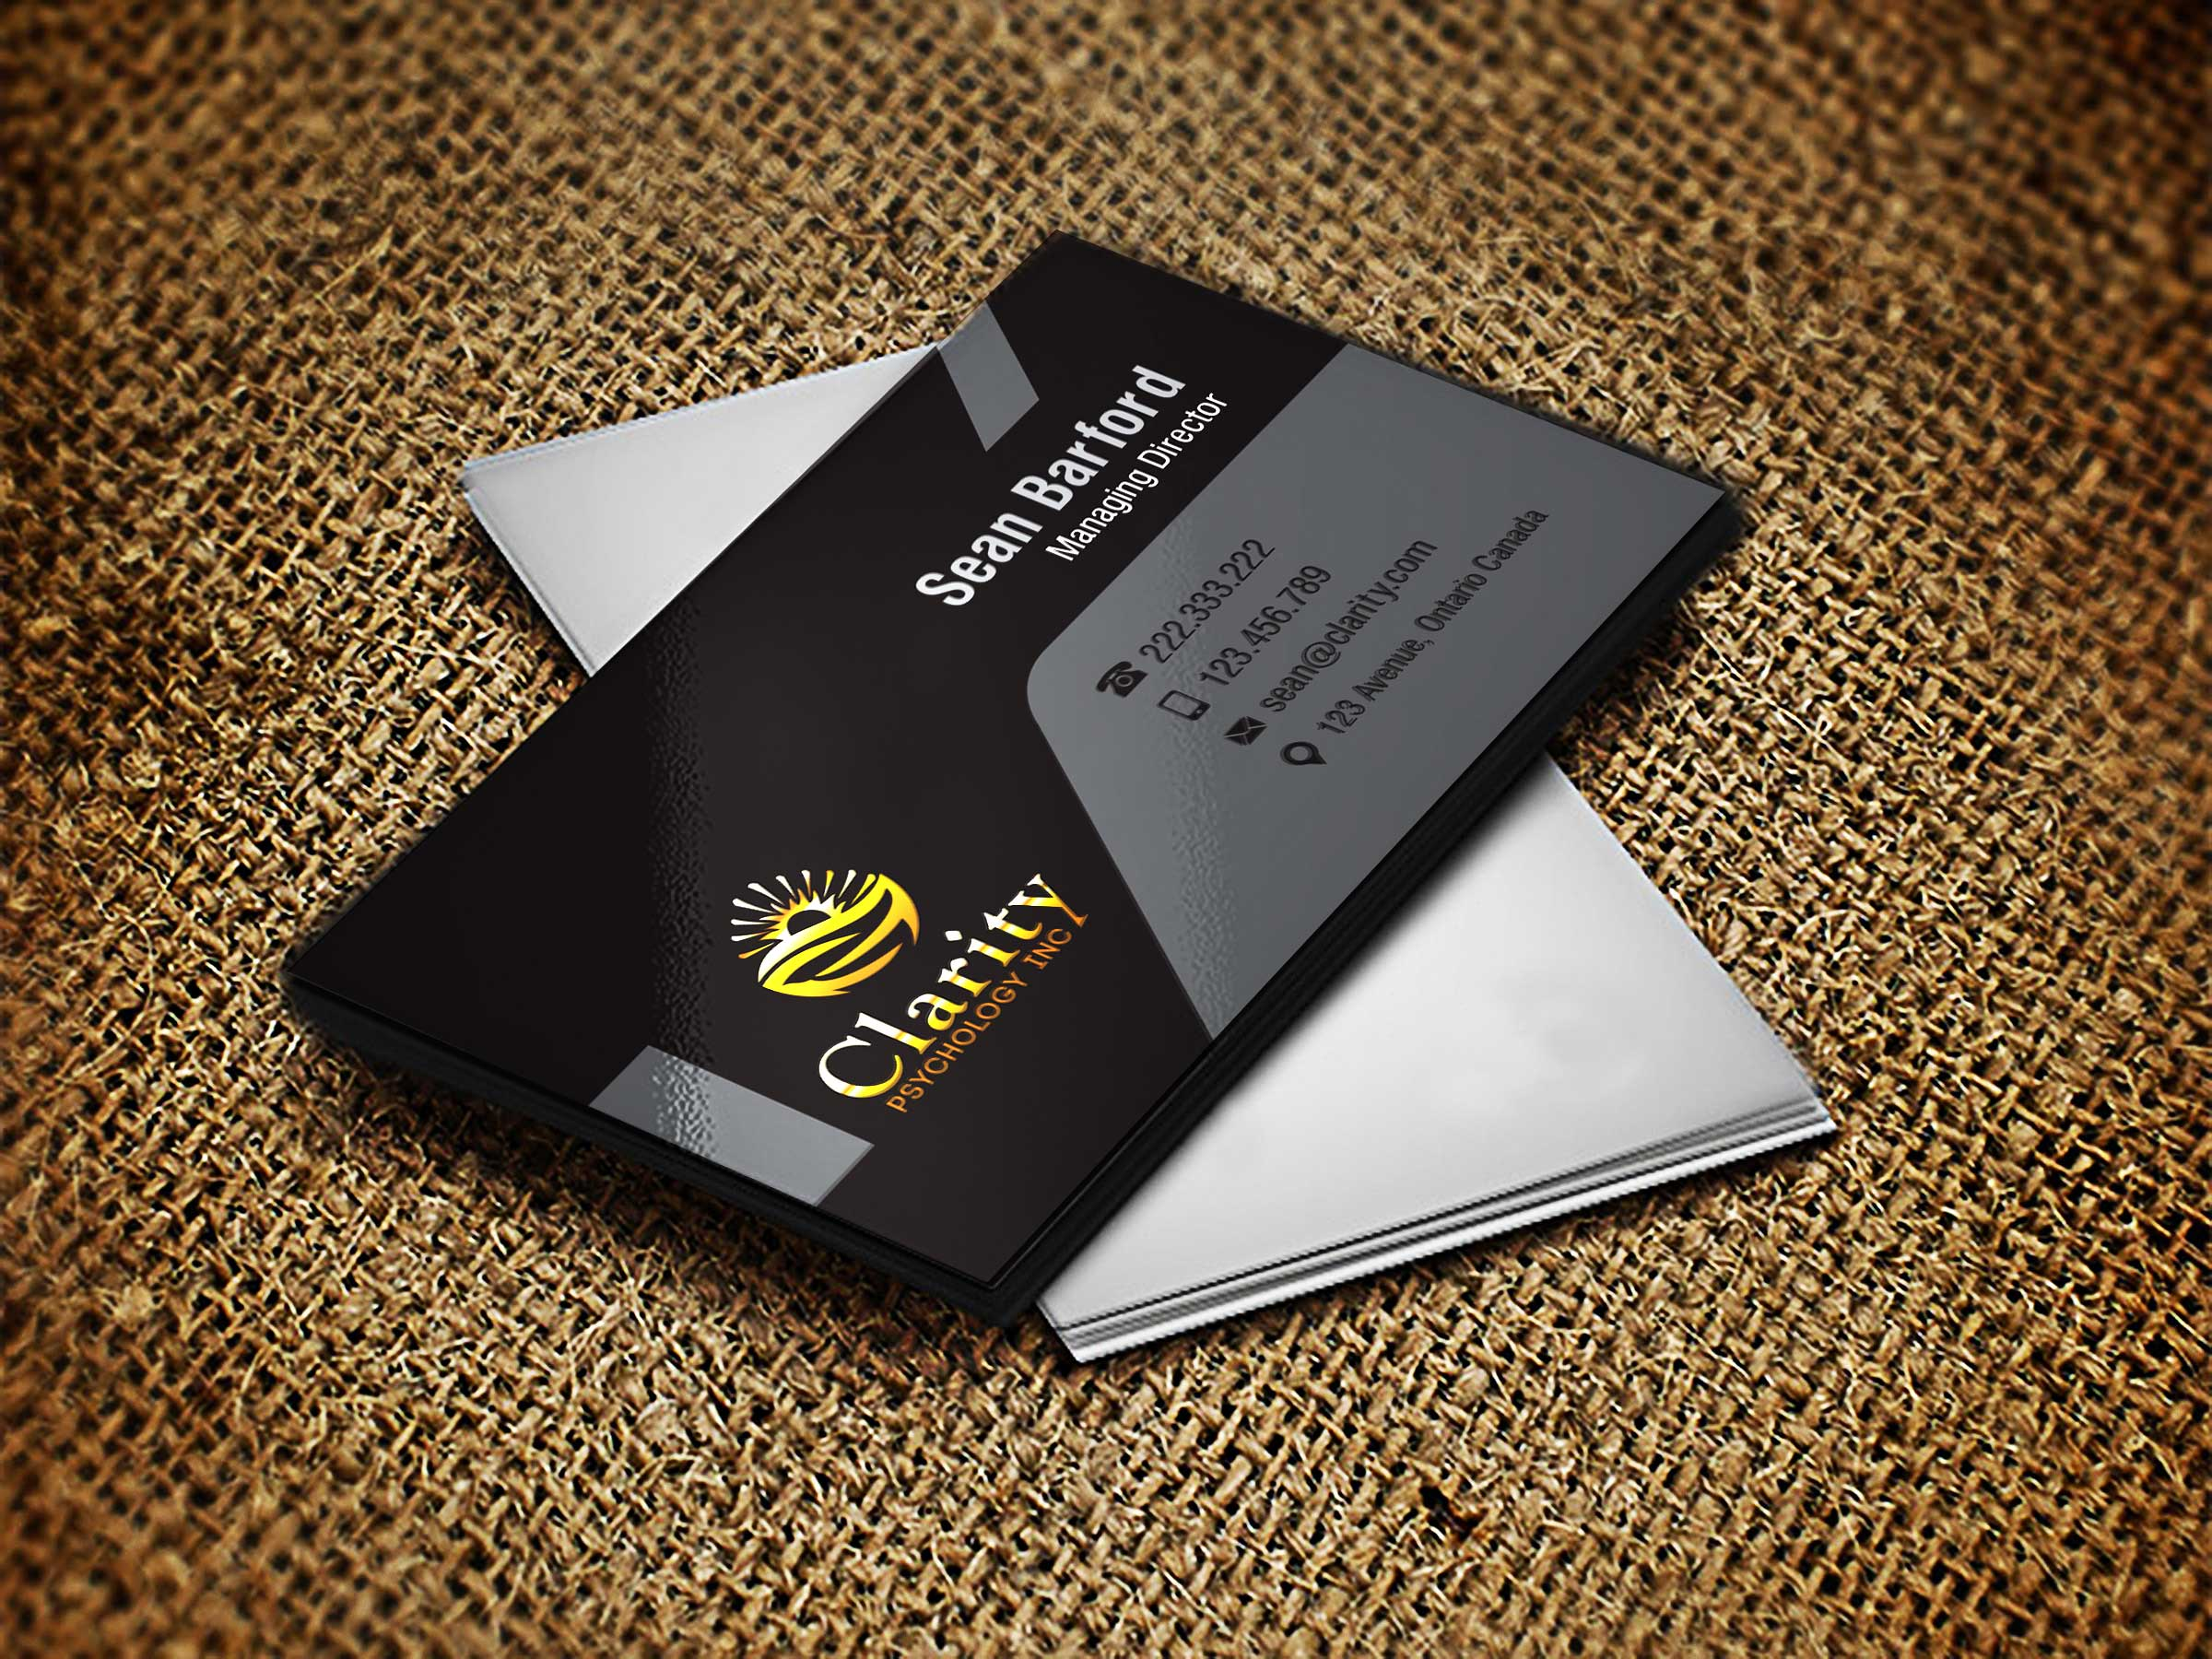 Business card design contests professional business card design business card design by lagalag entry no 6 in the business card design contest magicingreecefo Choice Image